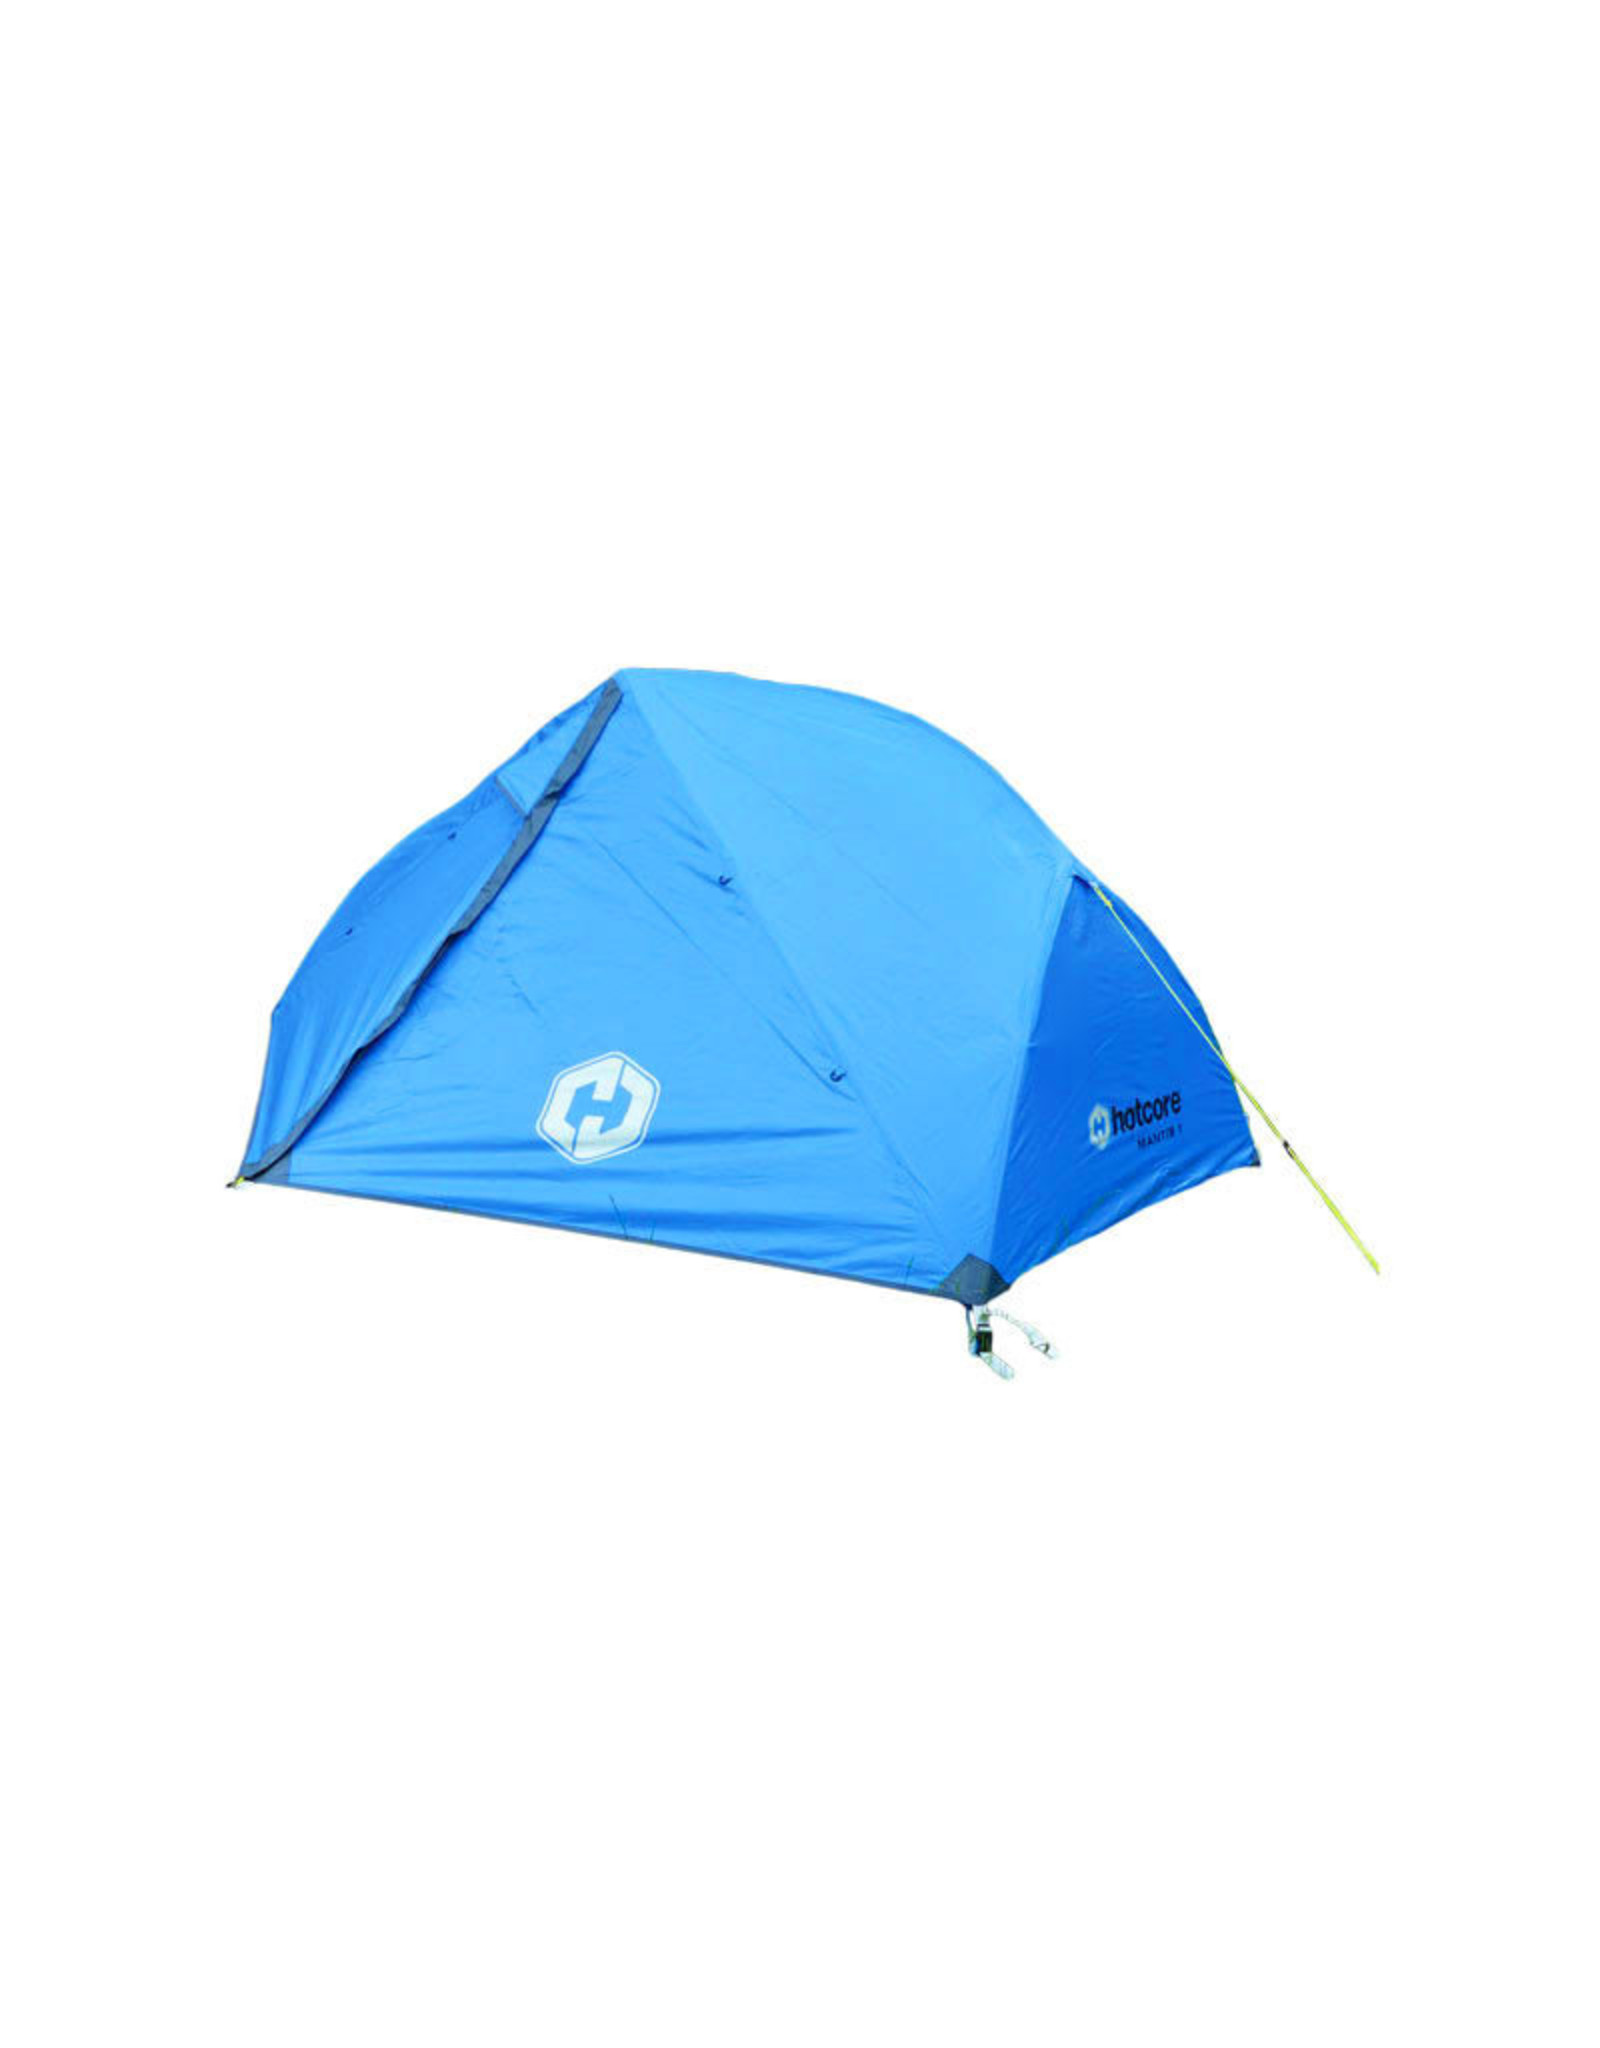 Hotcore Outdoor Products Hotcore Mantis 1 Tent Blue